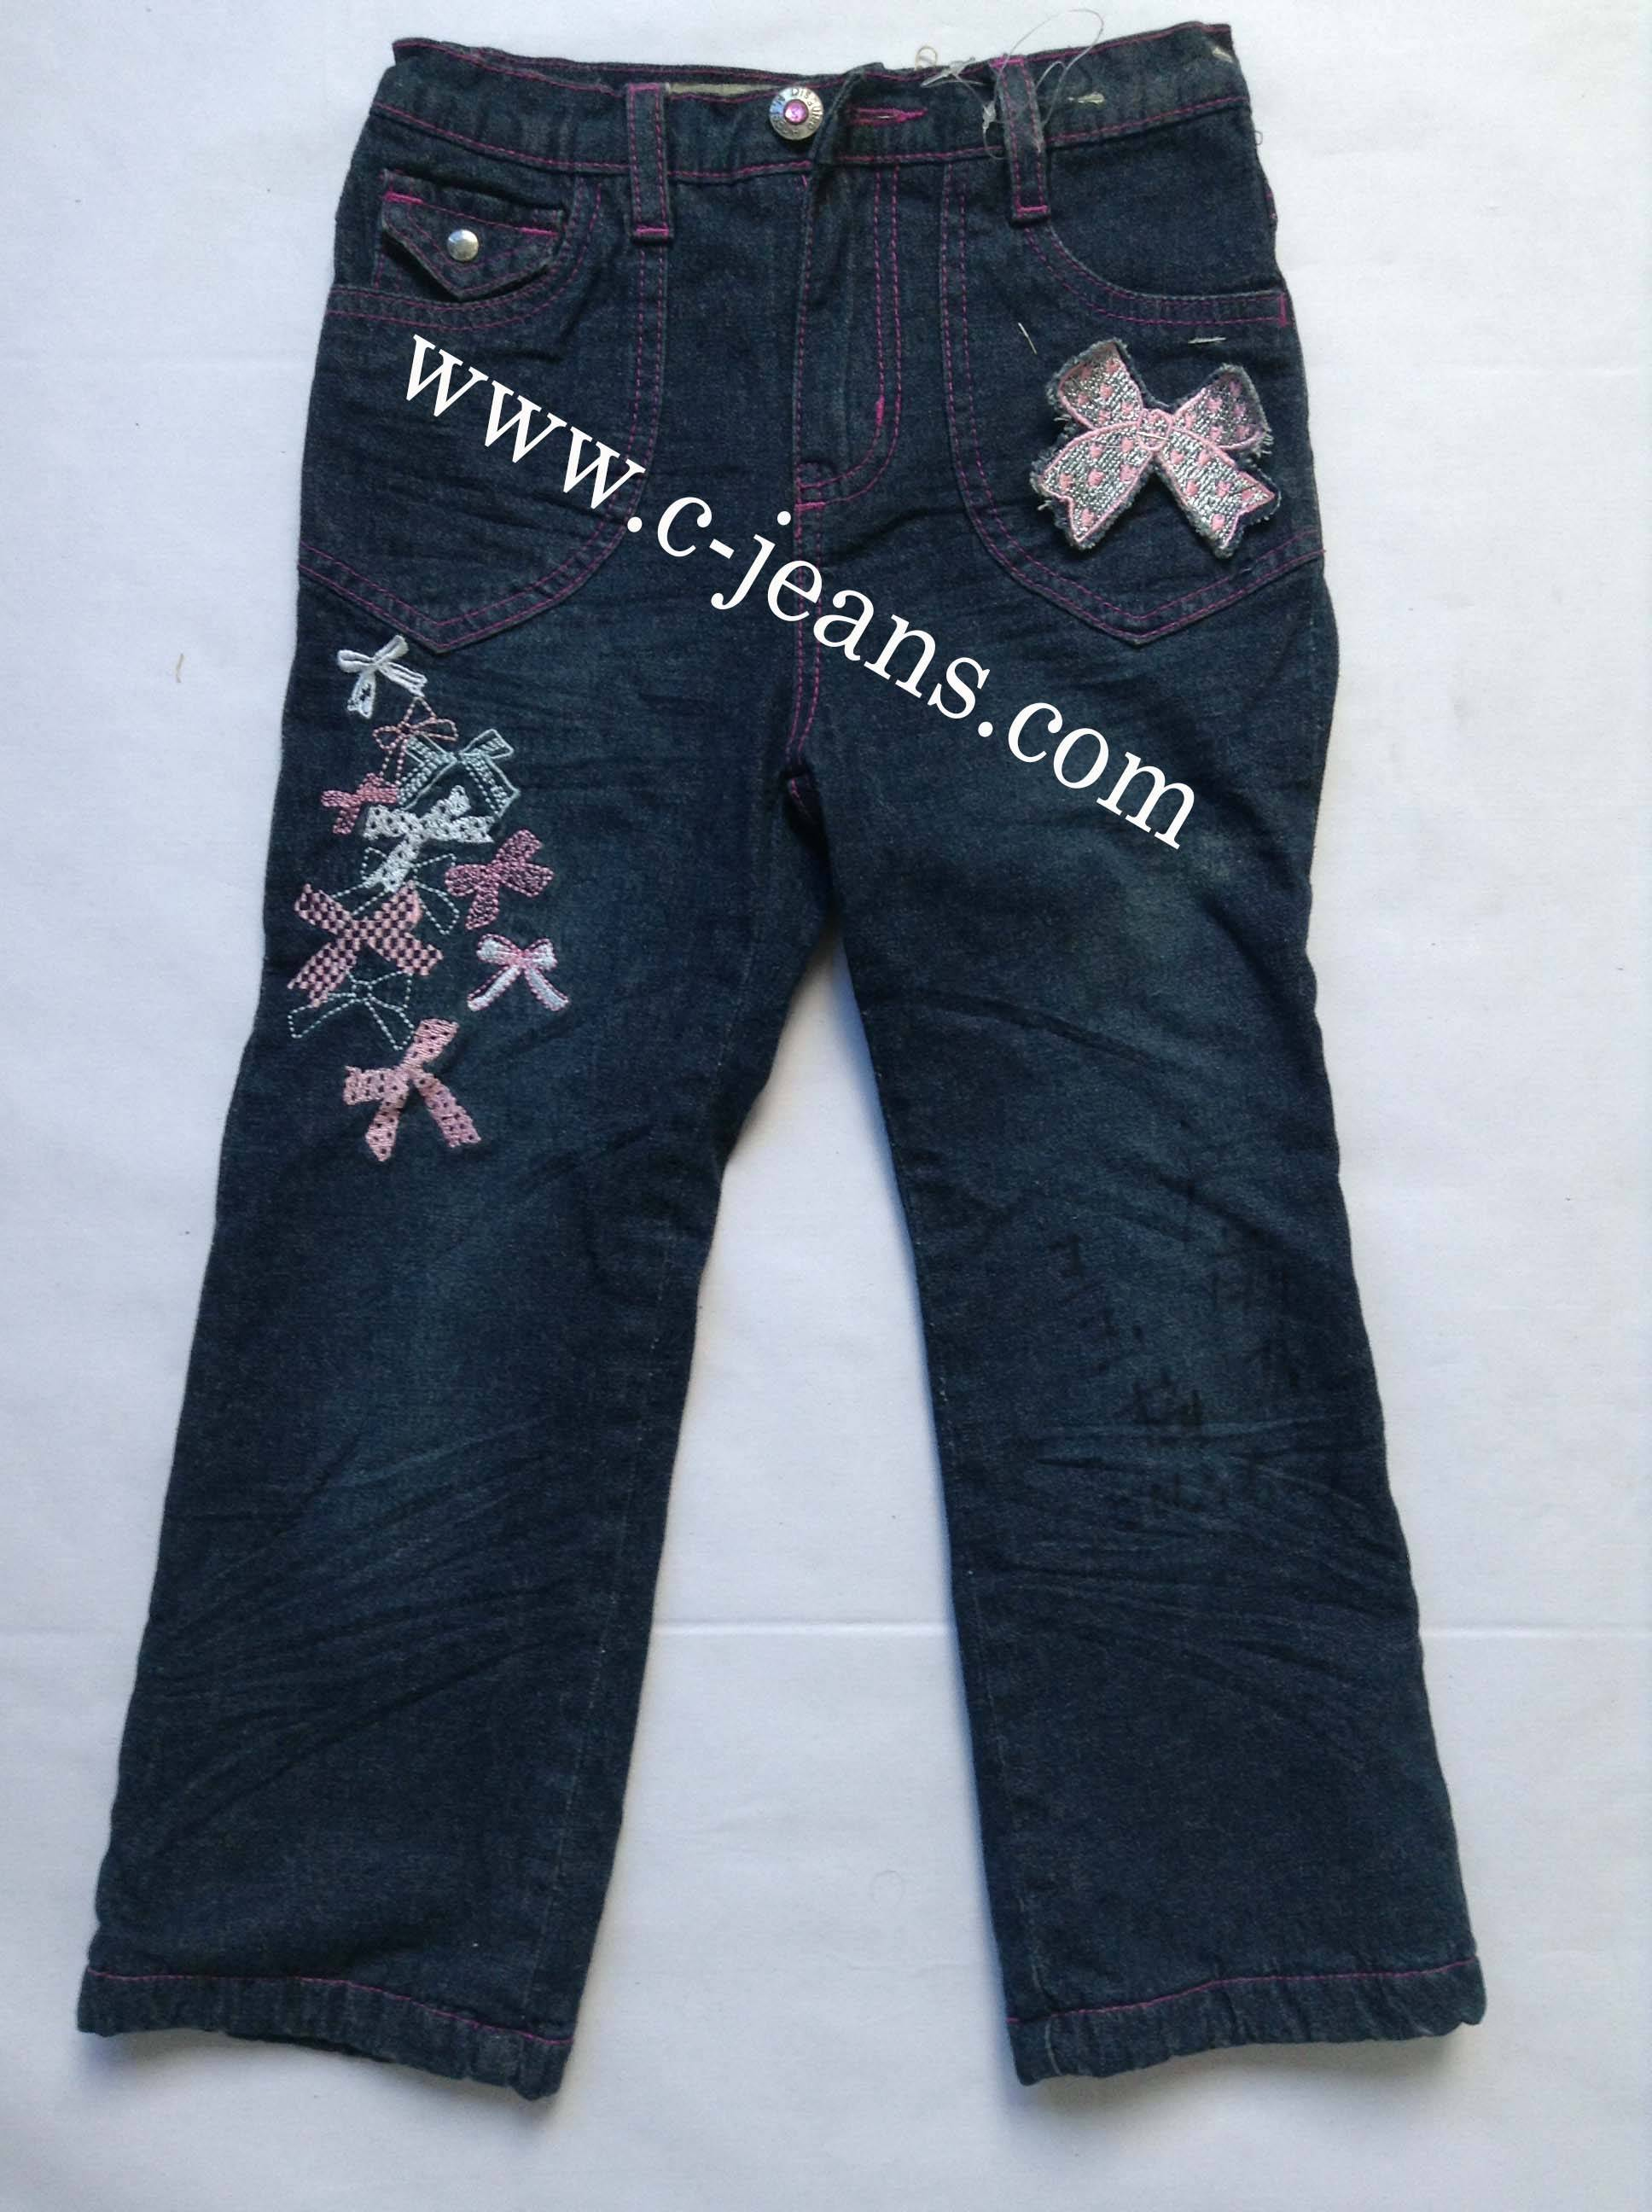 Longs Jeans for Girl Fashion Denim Girl Jeans. OEM Wholesale Hot Sale Girls Sexy Tight Jeans